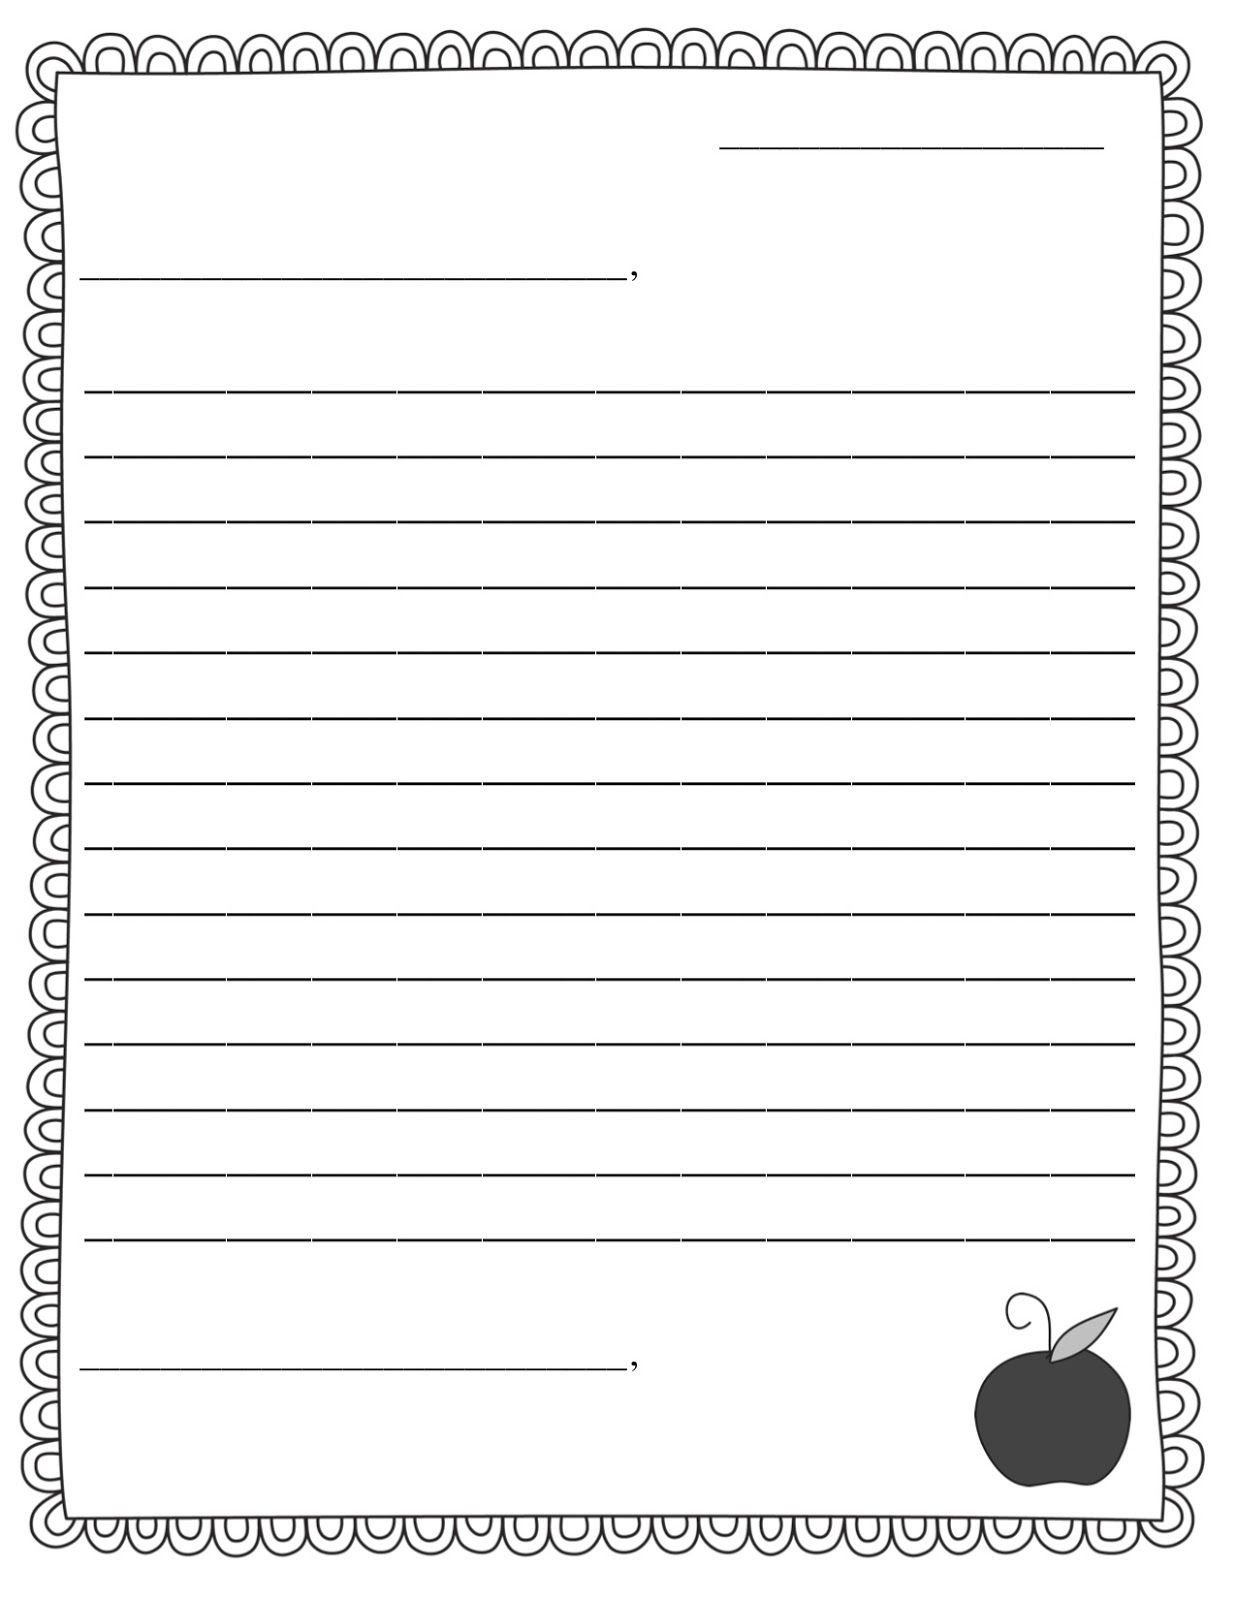 Letter Template for Kids Letter Template 3abspkjv Letters